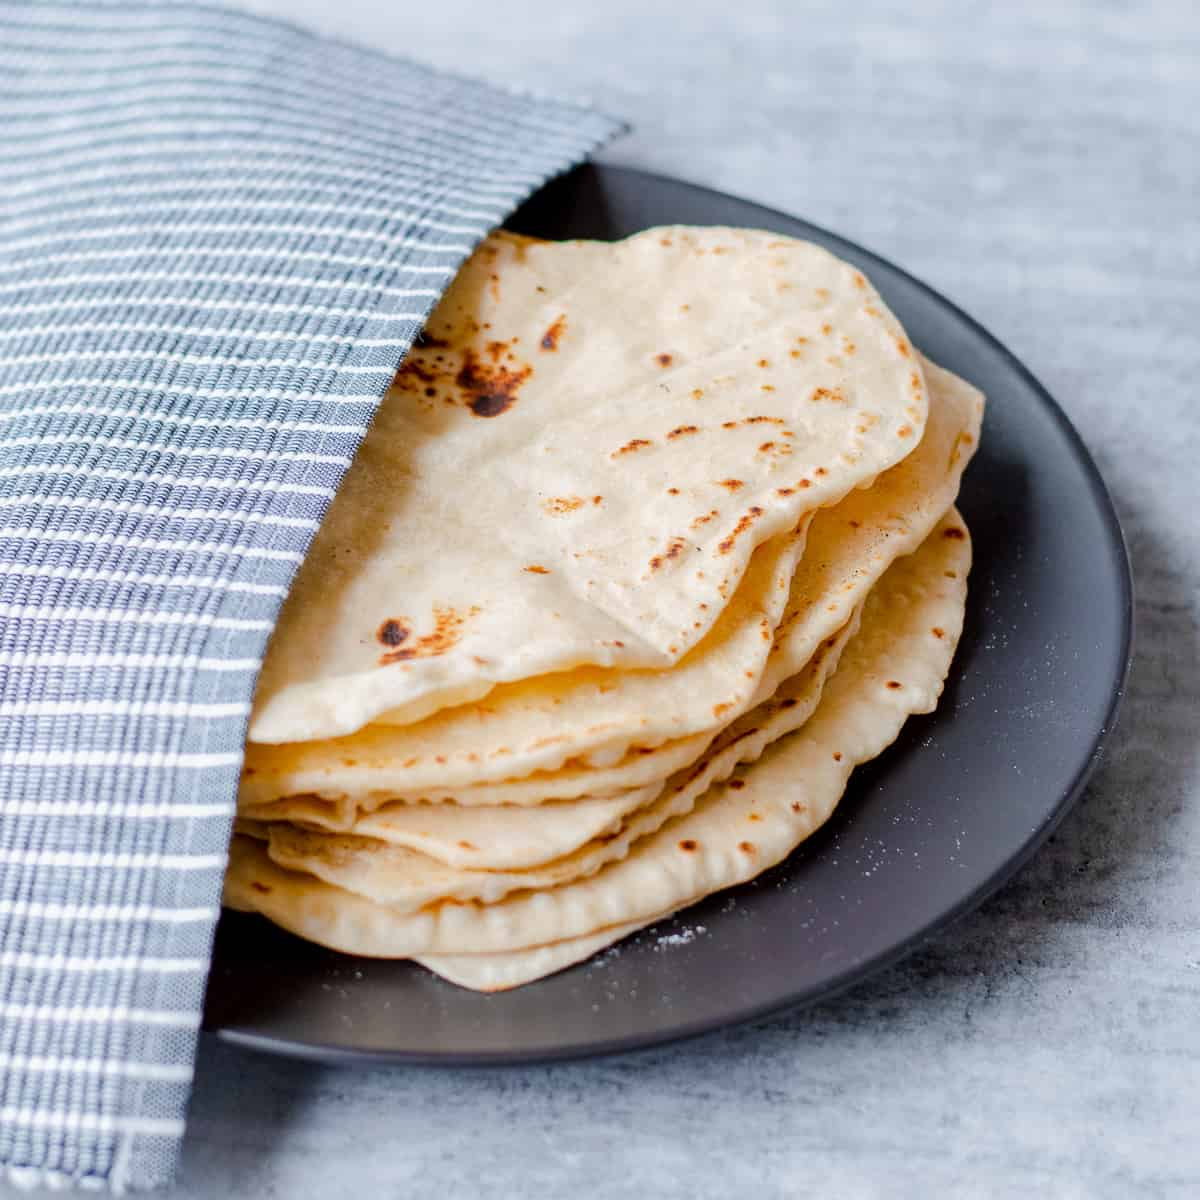 Homemade flour tortillas on black plate half covered with blue and white striped tea towel.